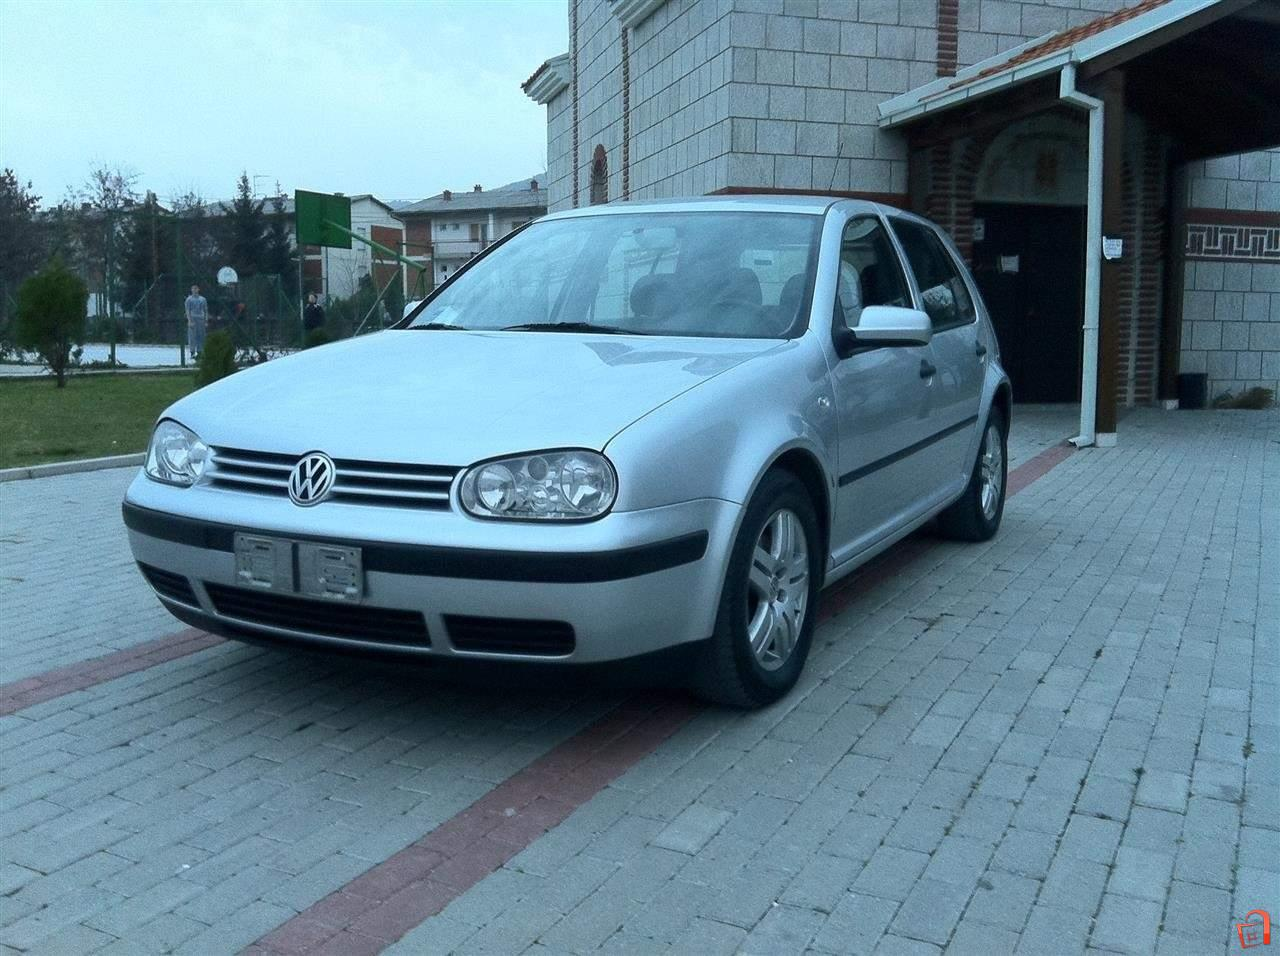 ad vw golf 4 1 9tdi 90ks full oprema unikat 01 for sale prilep prilep vehicles. Black Bedroom Furniture Sets. Home Design Ideas